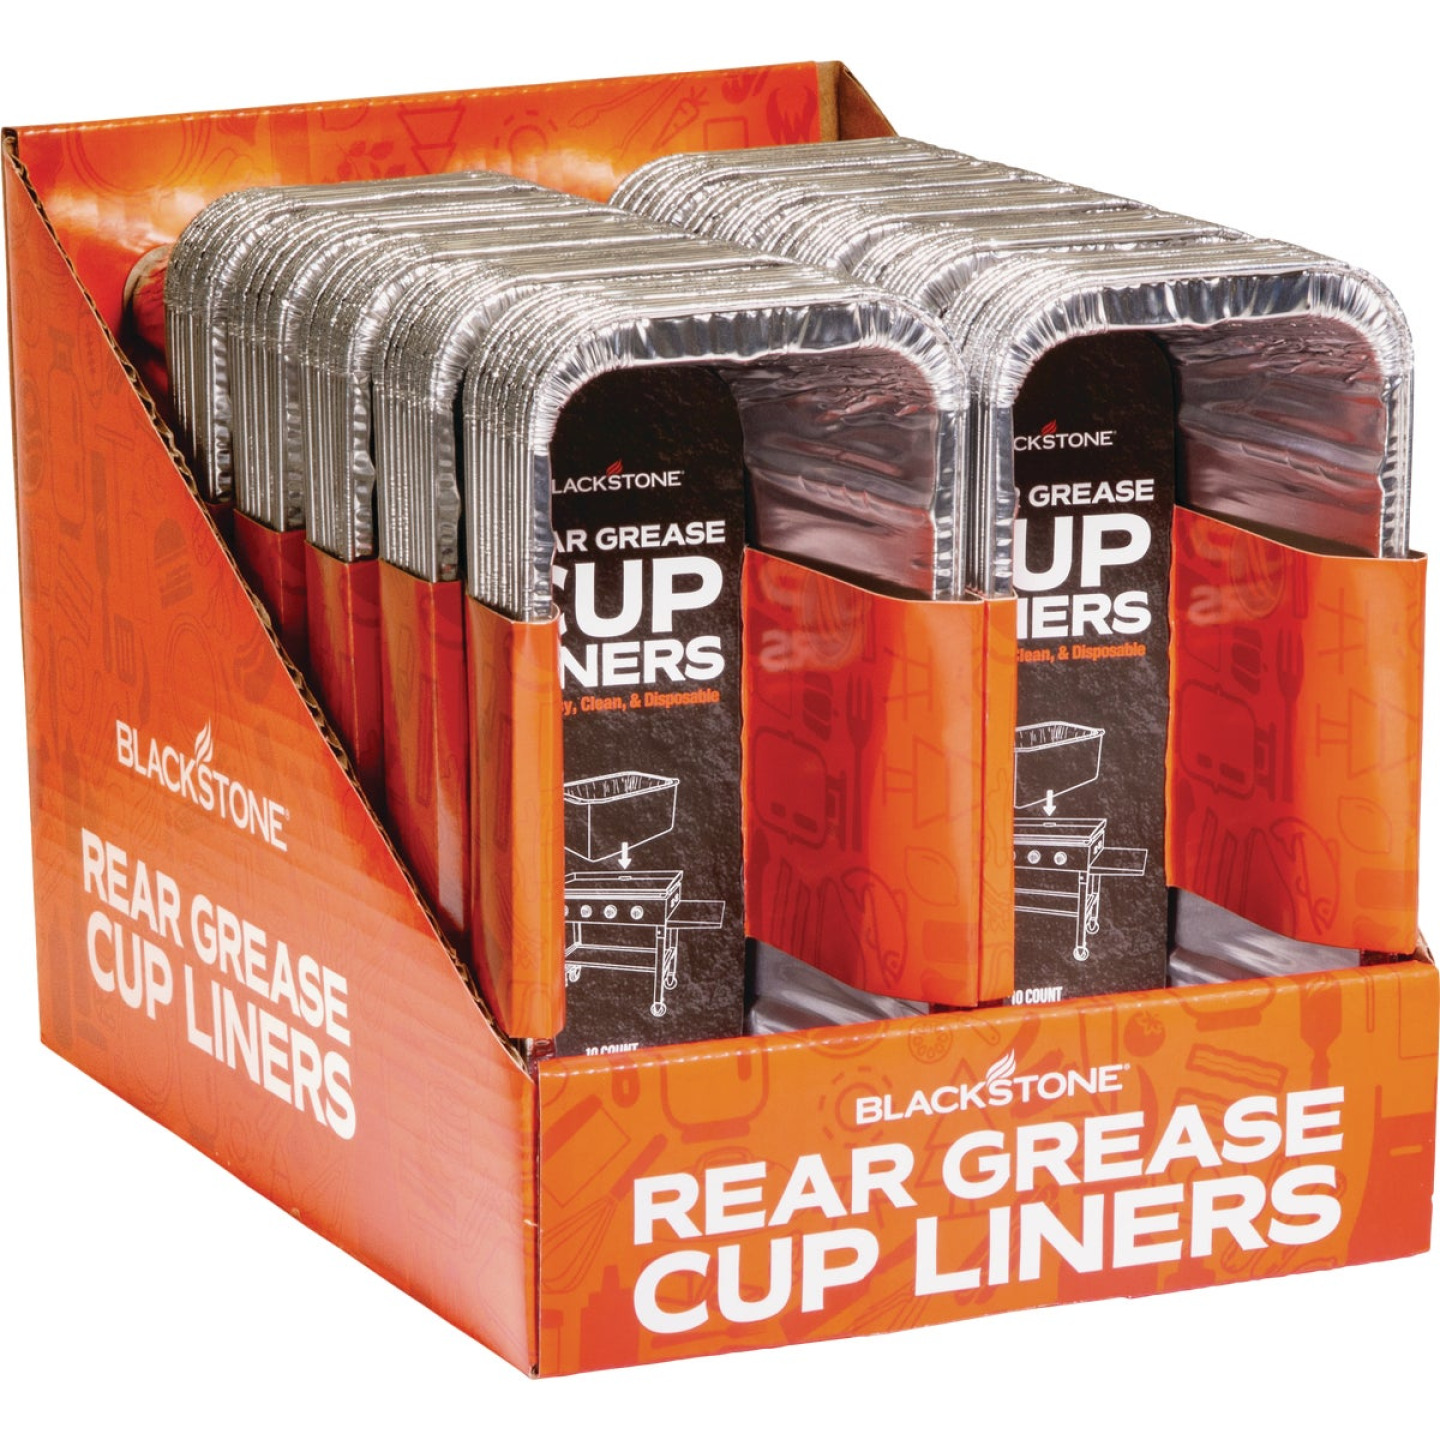 Blackstone Aluminum Foil Grease Cup Liner (10-Pack) Image 6